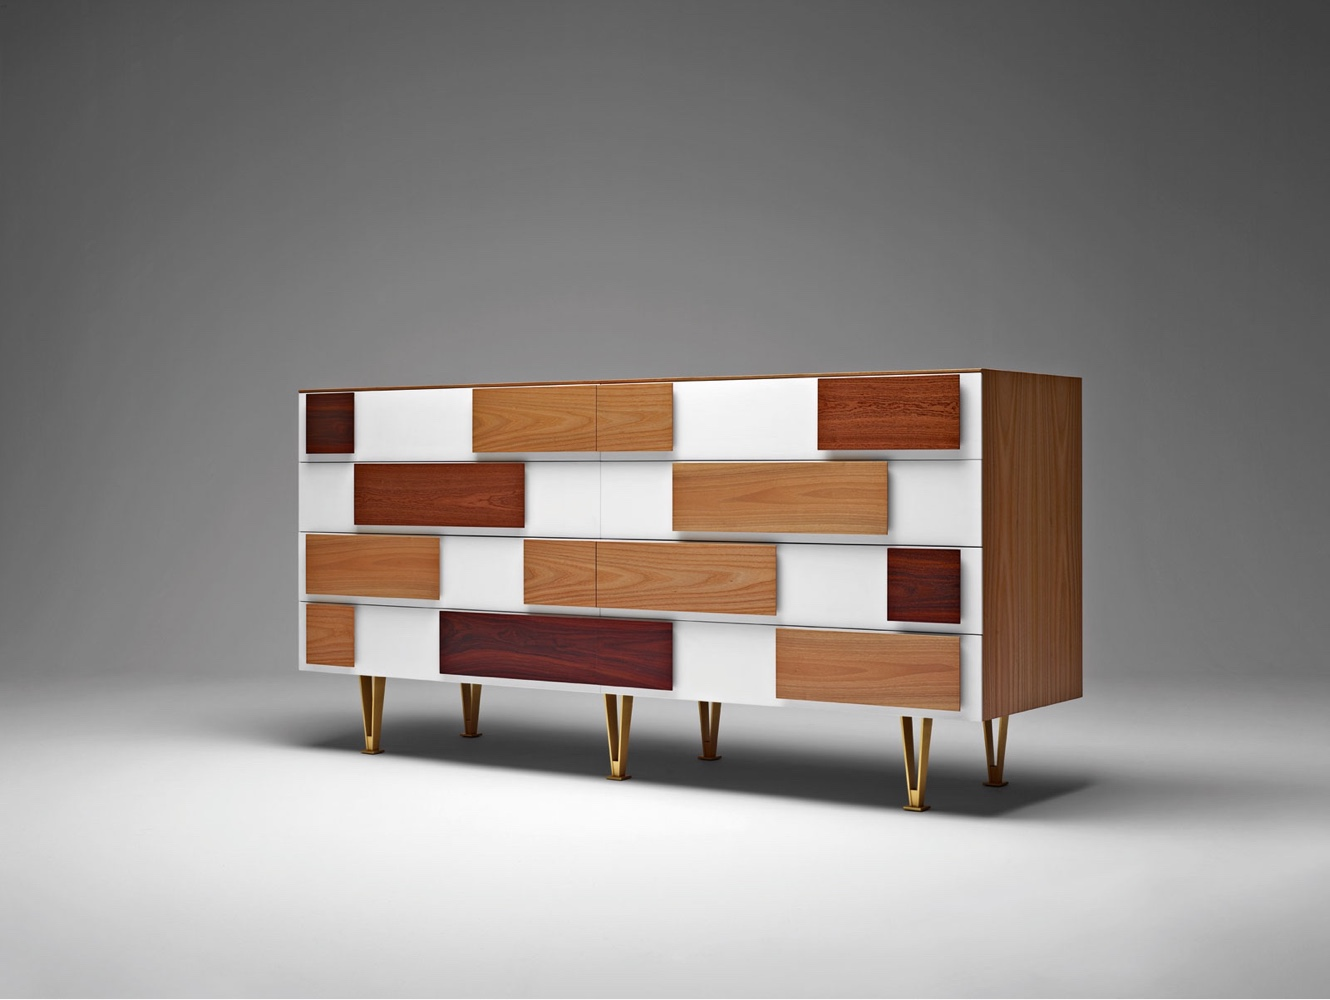 Chest of drawers D.655.1 D.655.2 by Gio Ponti. Designed in several versions between1952 and 1955, thisnew version was produced using original drawings fromthe Gio Ponti Archives.Image ©Molteni & C S.P.A.